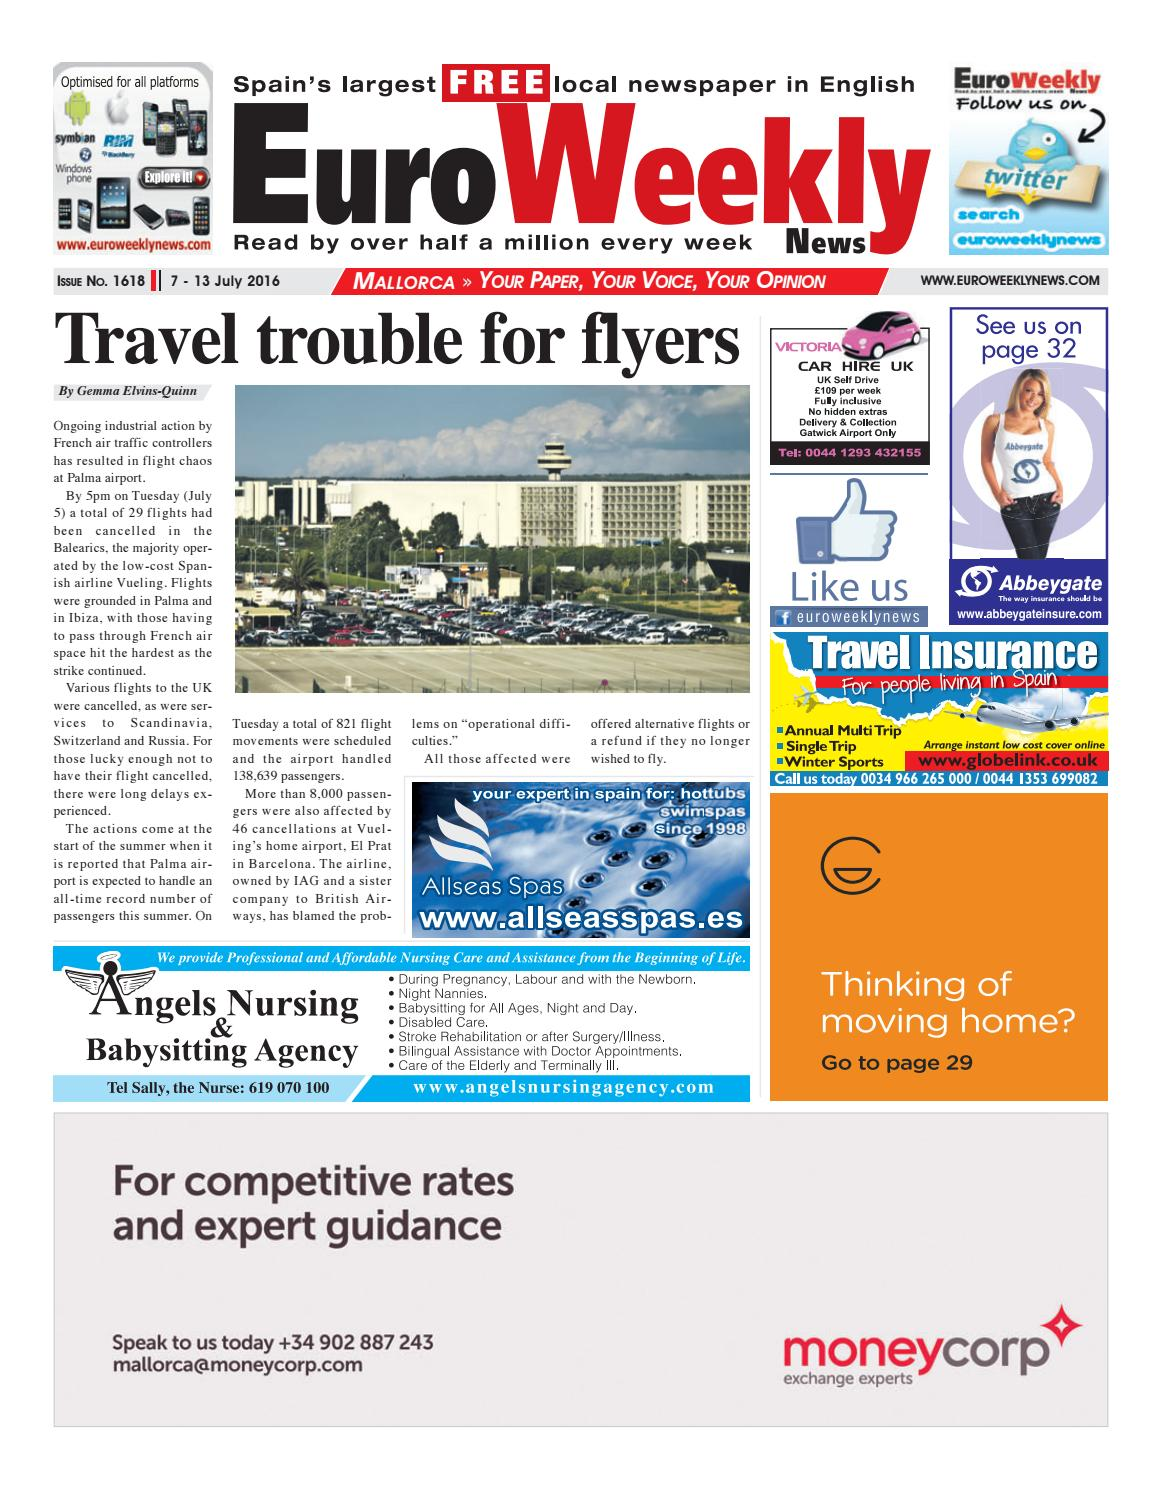 Euro weekly news mallorca 7 13 july 2016 issue 1618 by euro euro weekly news mallorca 7 13 july 2016 issue 1618 by euro weekly news media sa issuu fandeluxe Gallery